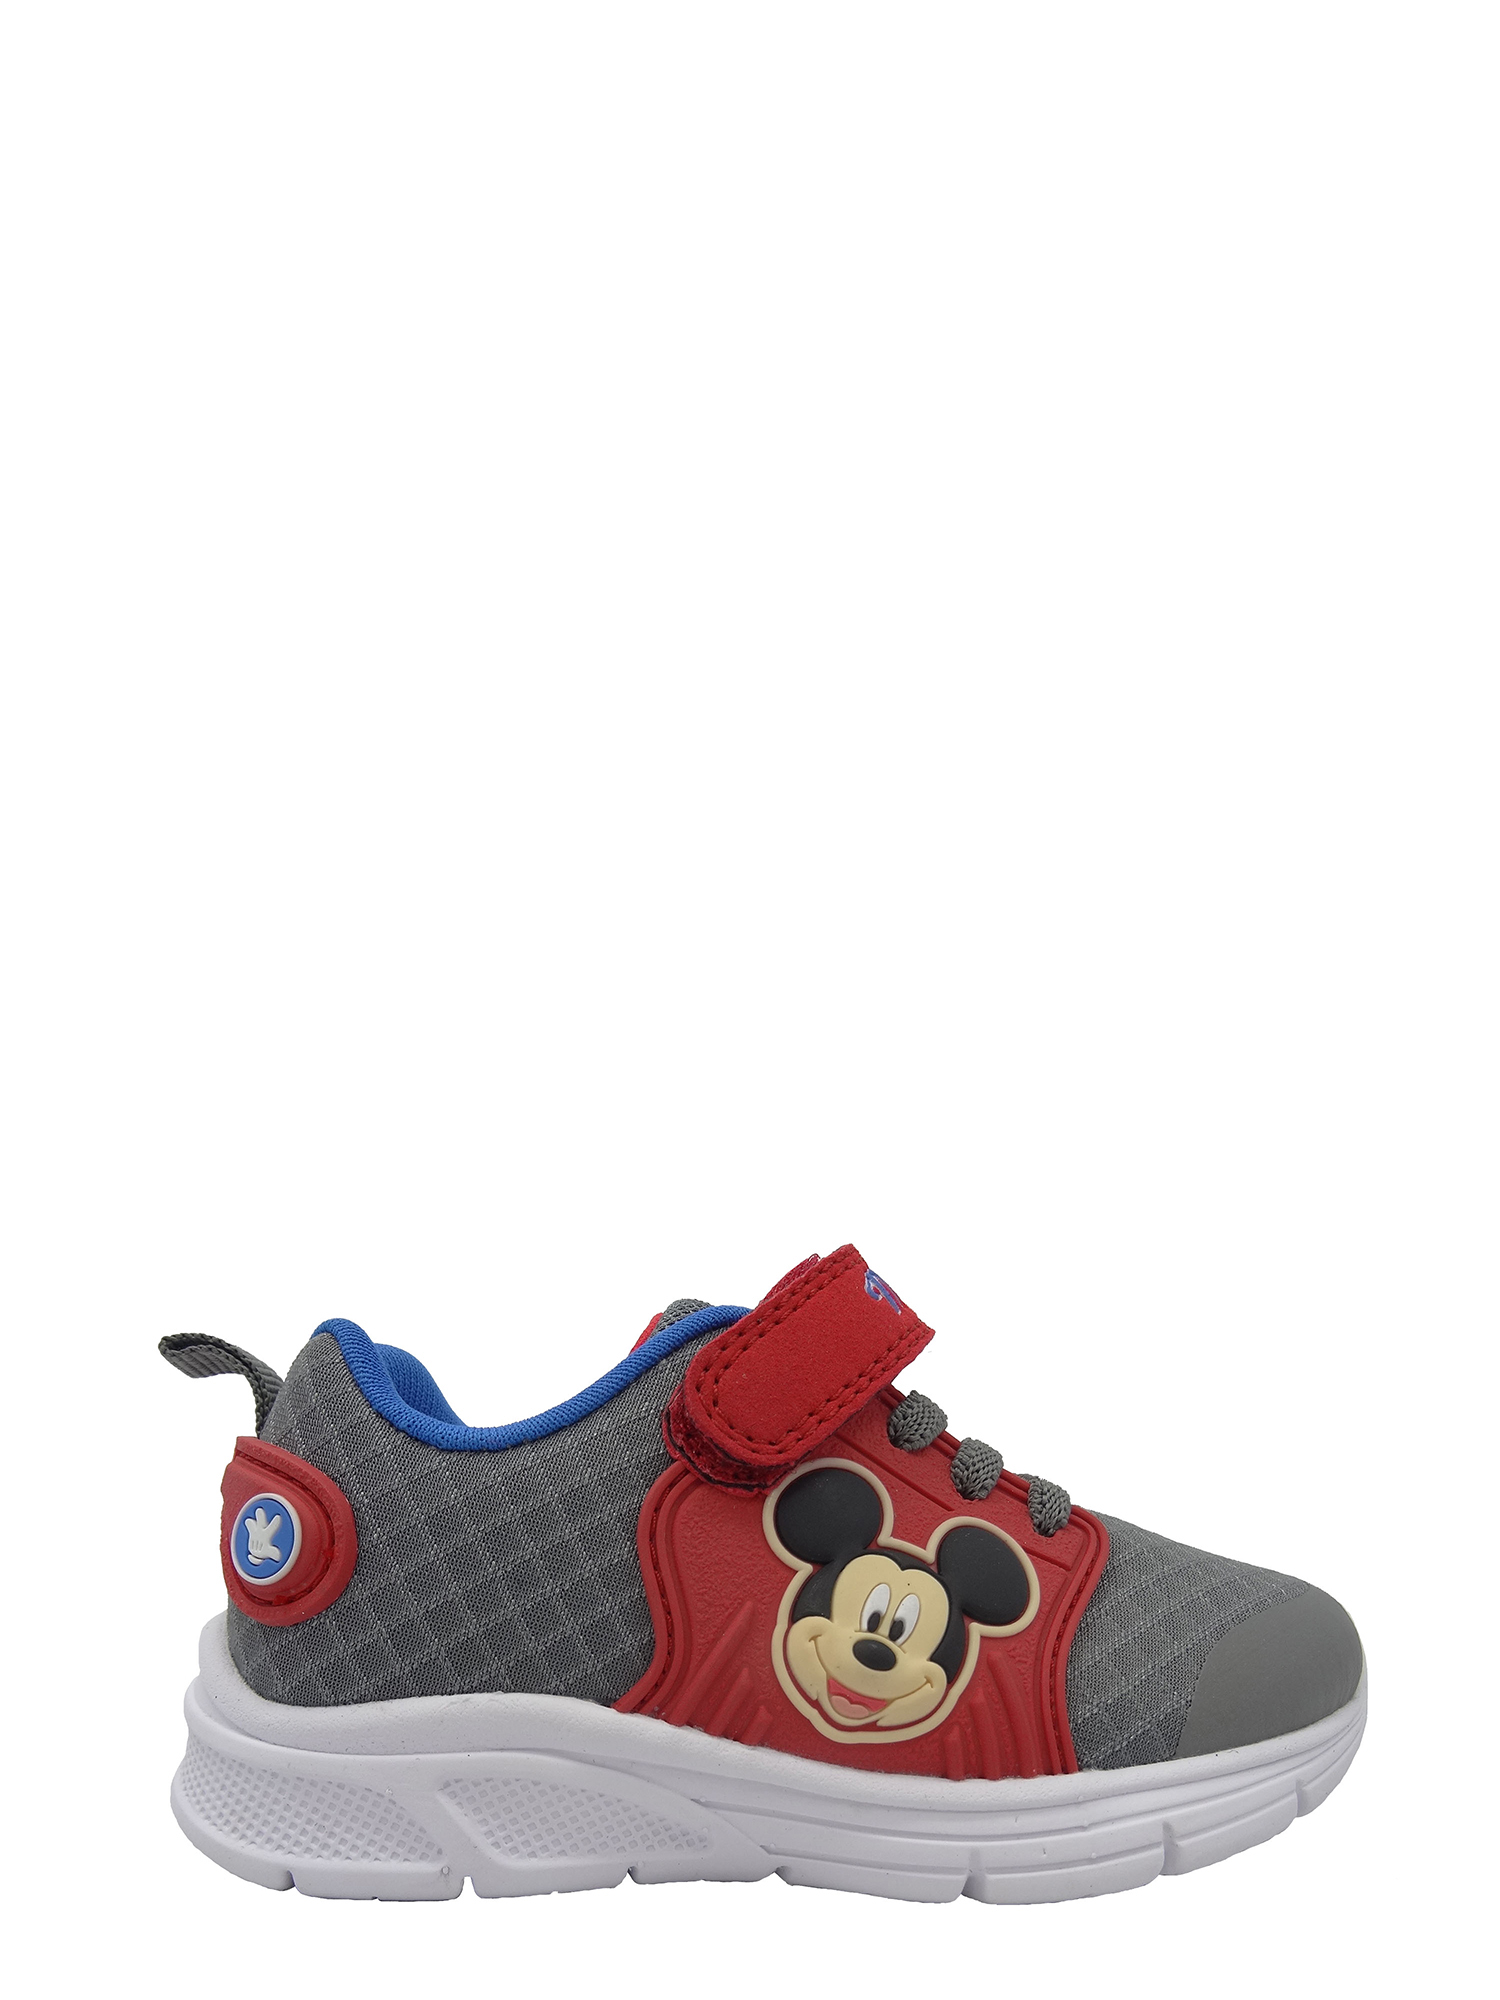 Mickey Mouse - Toddler Boys' Athletic